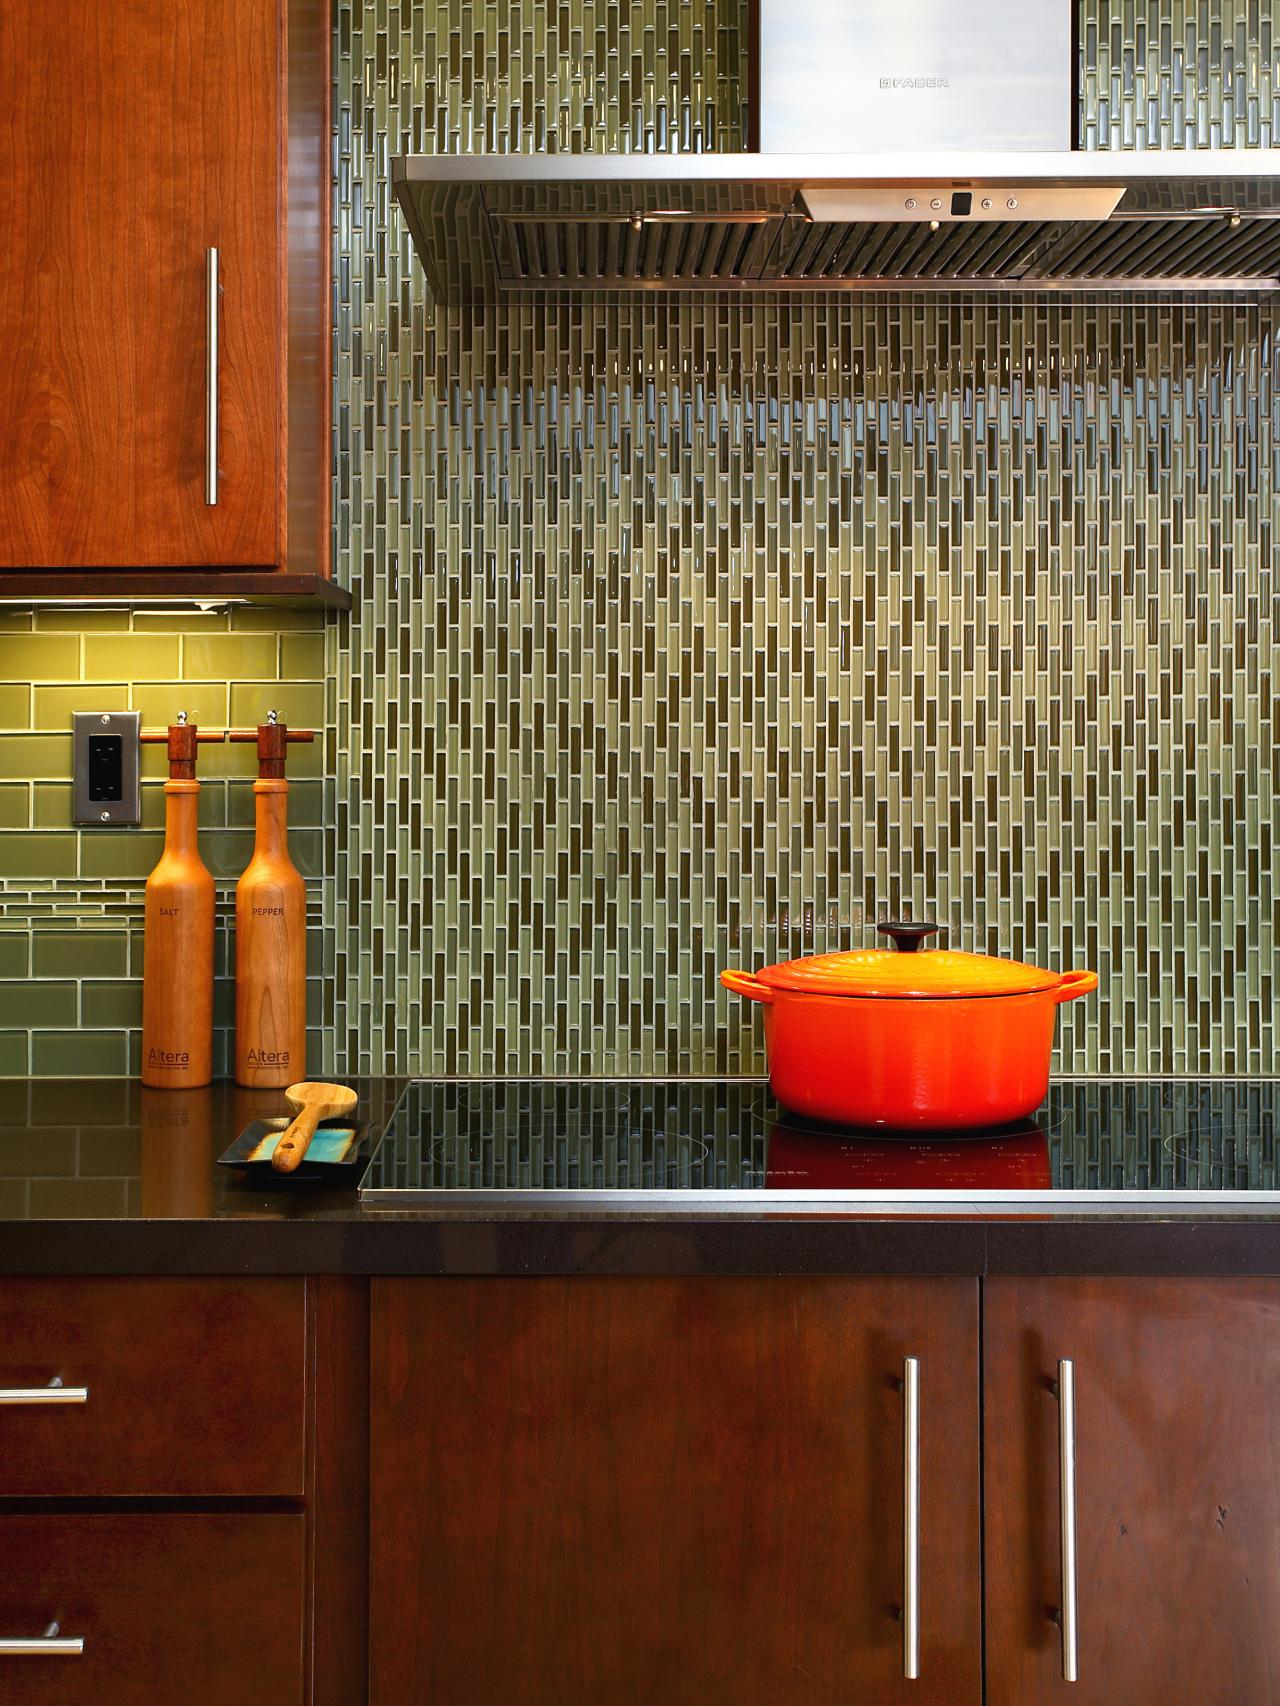 Subway tile backsplashes pictures ideas tips from hgtv hgtv tags dailygadgetfo Choice Image